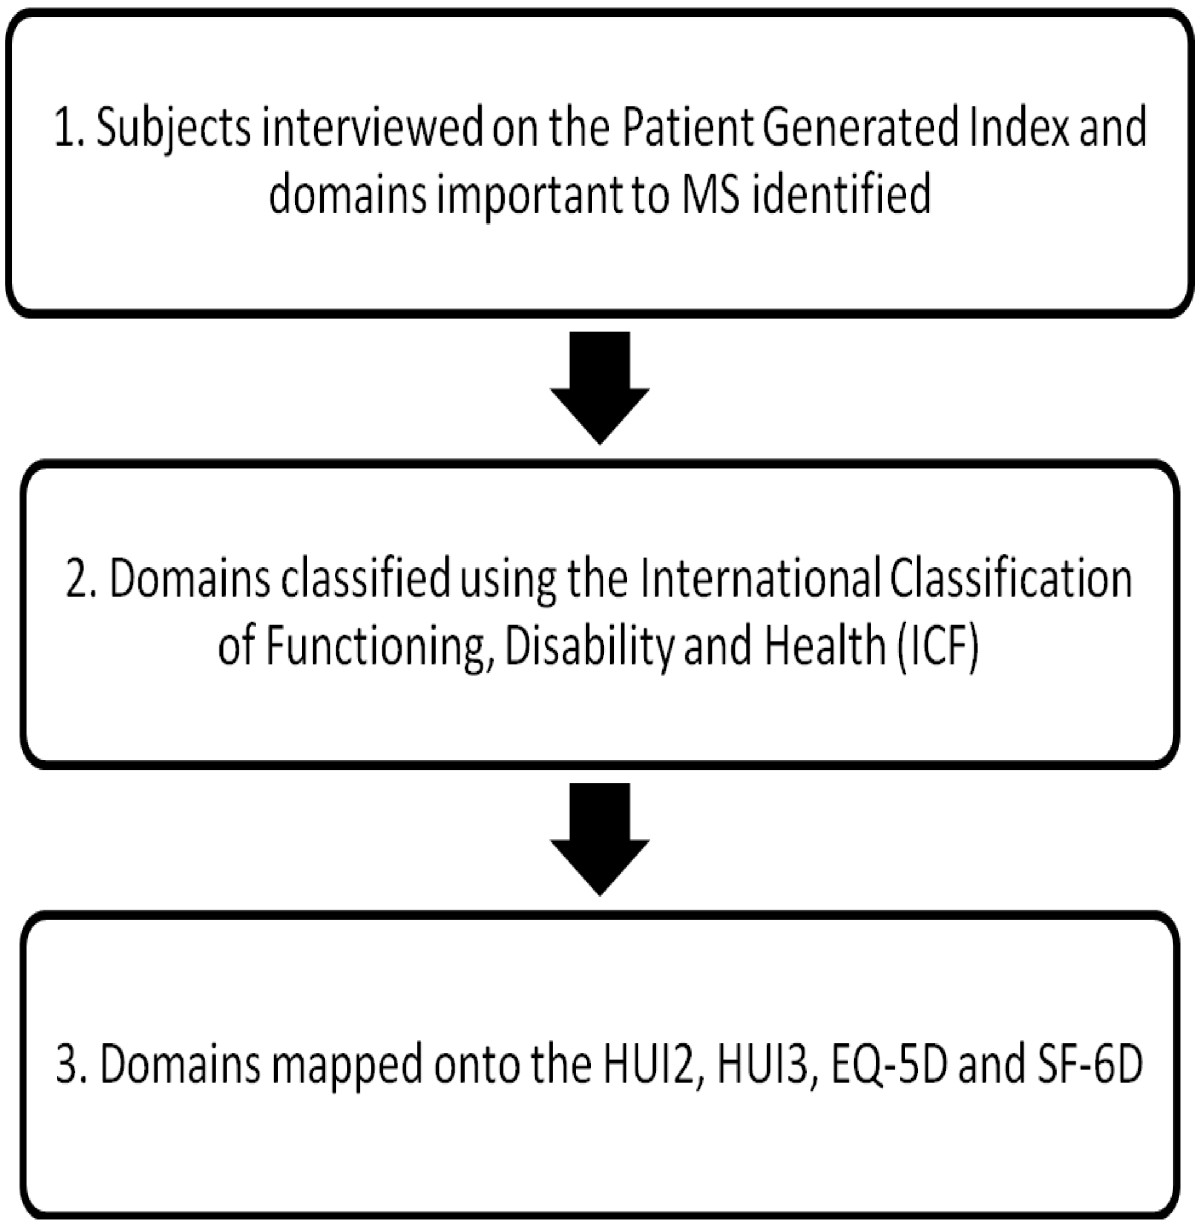 https://static-content.springer.com/image/art%3A10.1186%2F1477-7525-11-71/MediaObjects/12955_2012_Article_1122_Fig1_HTML.jpg